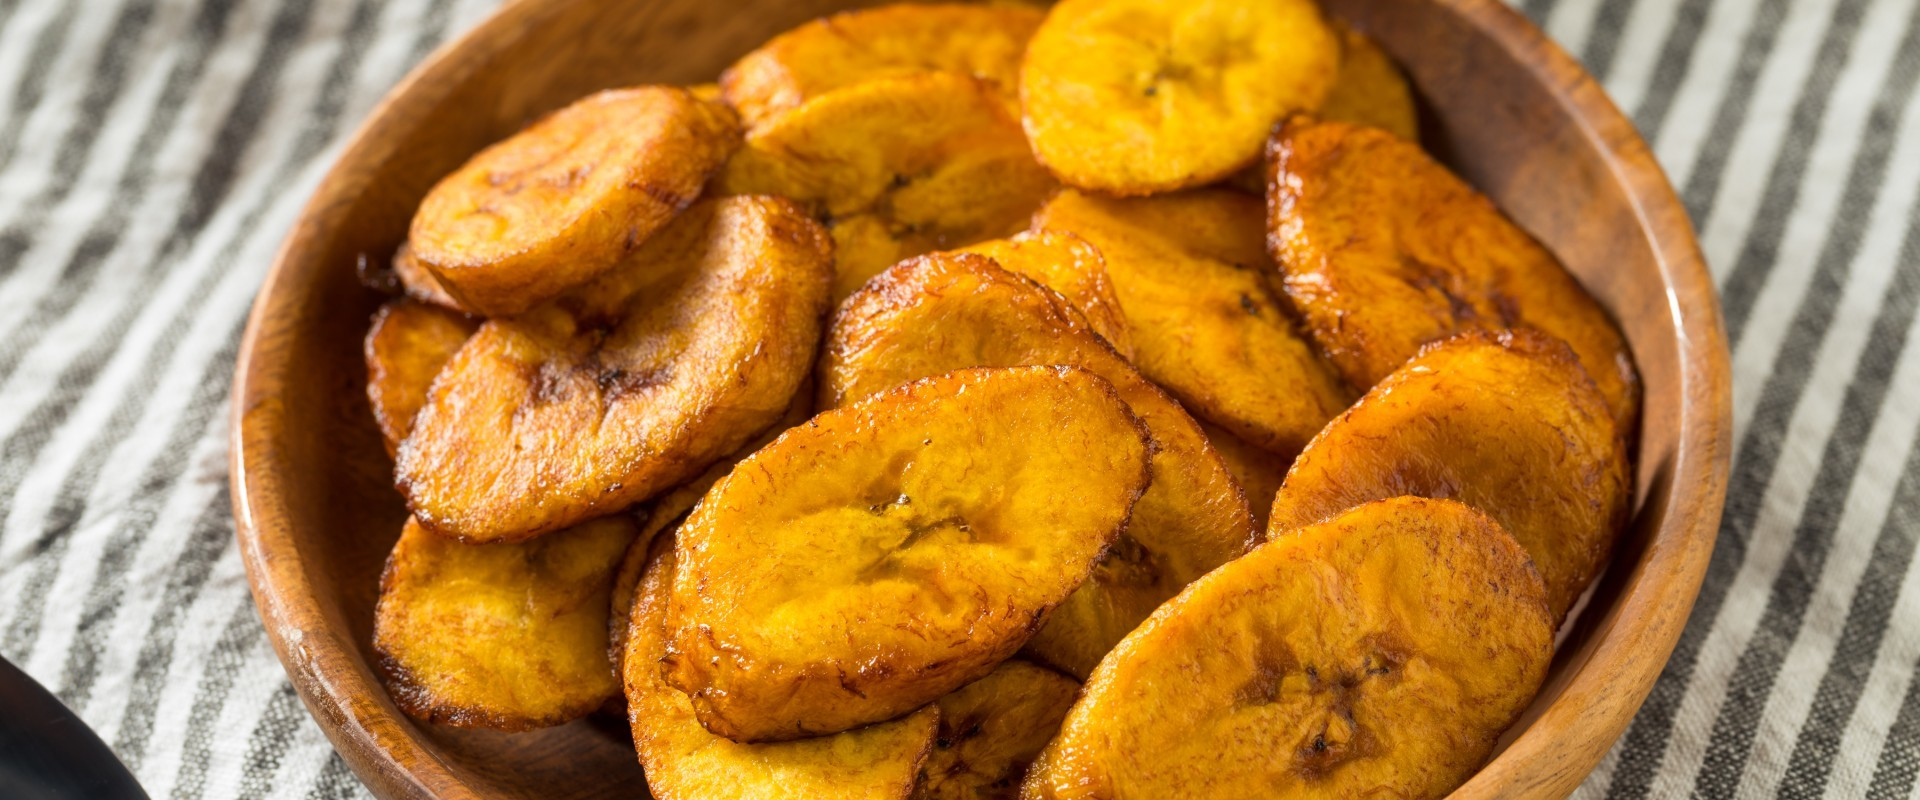 Plantain about